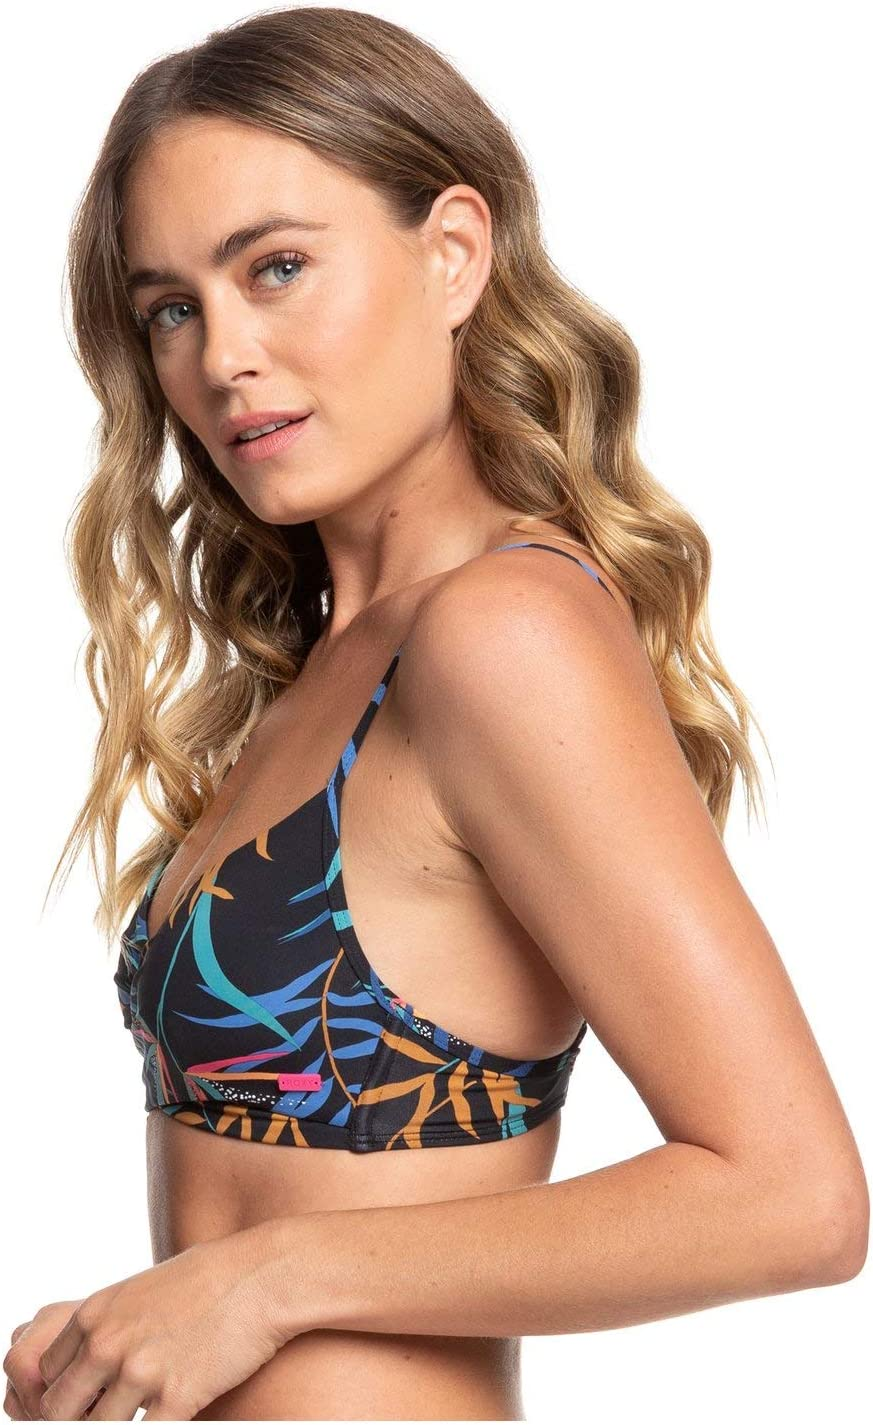 Roxy Damen Lahaina Bay Wickel-BH-Bikinioberteil f/ür Frauen Separate Top